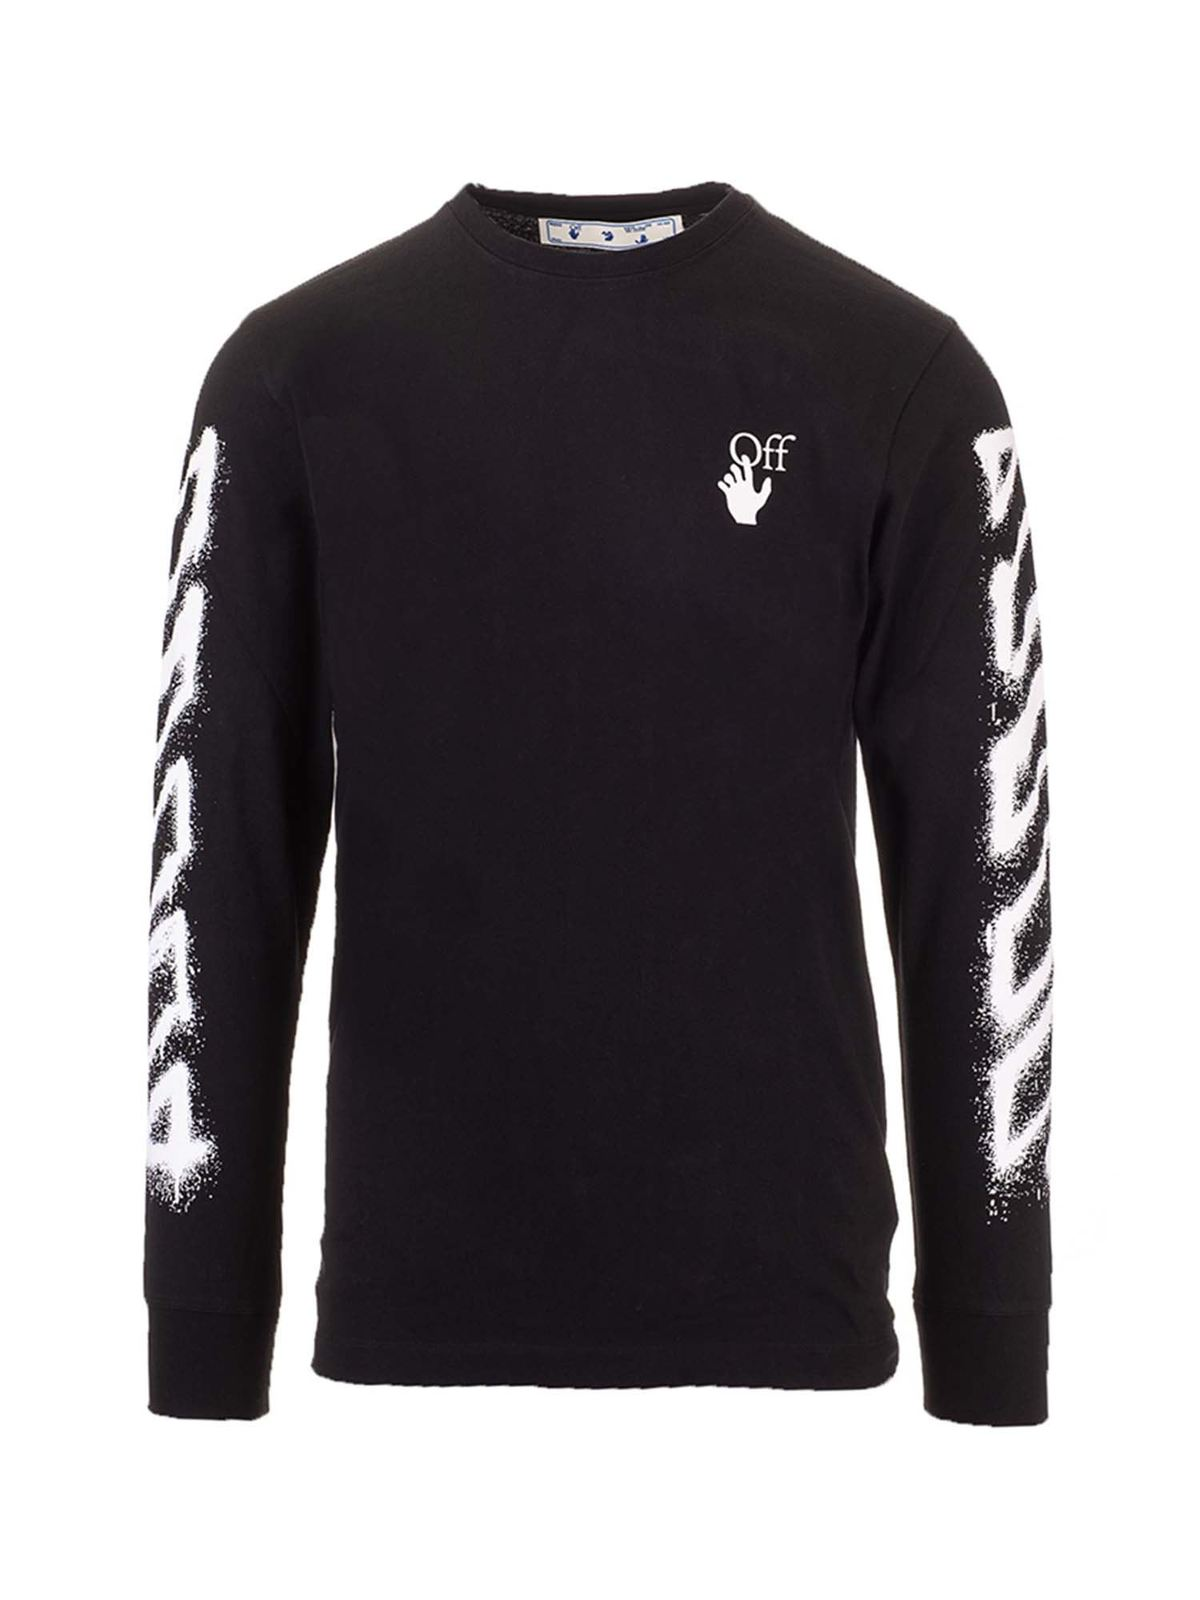 Off-White Arrow printed t-shirt in black and white